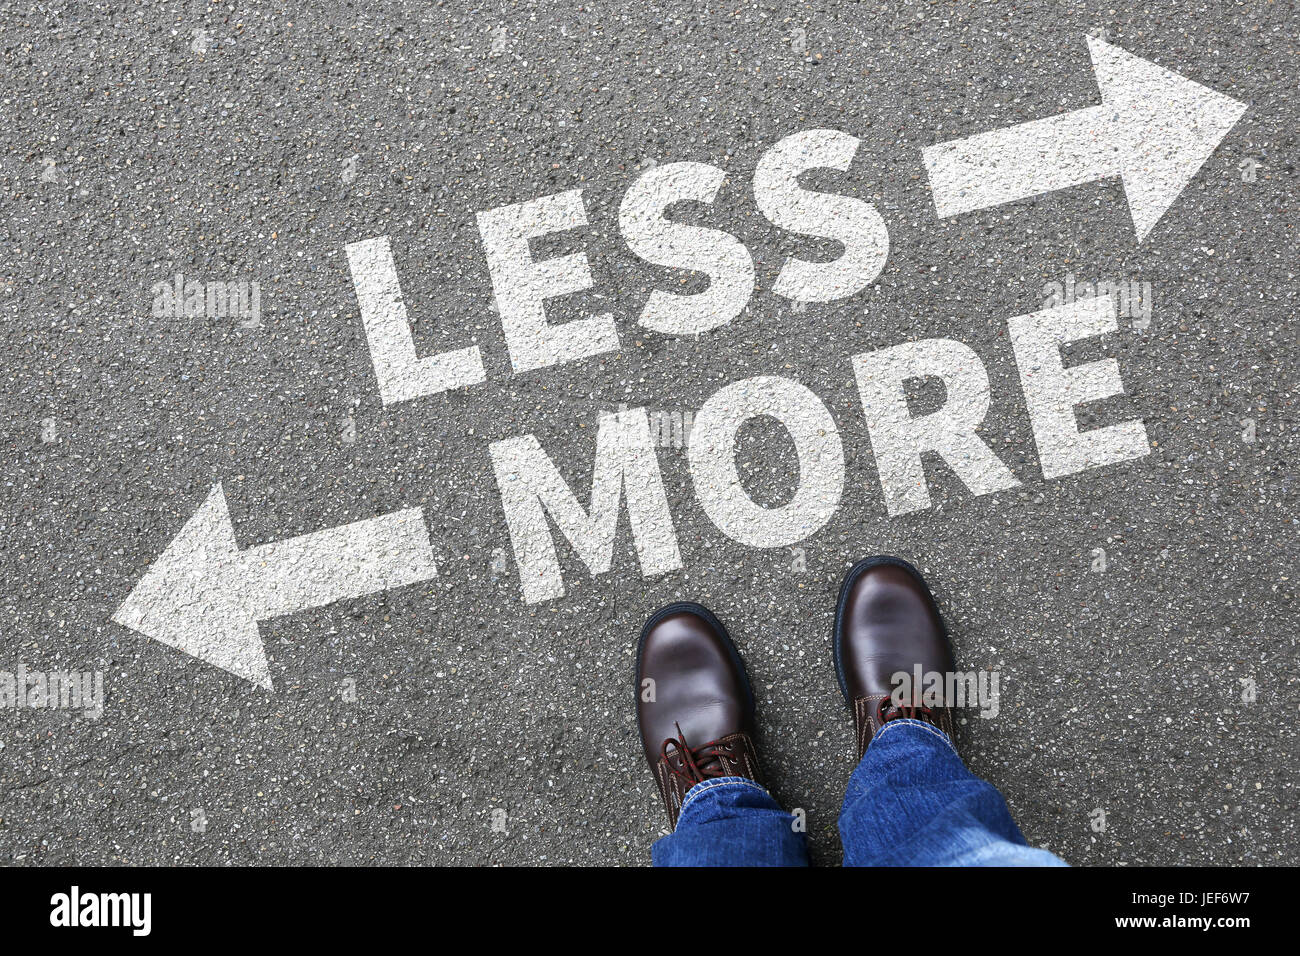 Less is more business concept decision minimalist surrender better life success - Stock Image